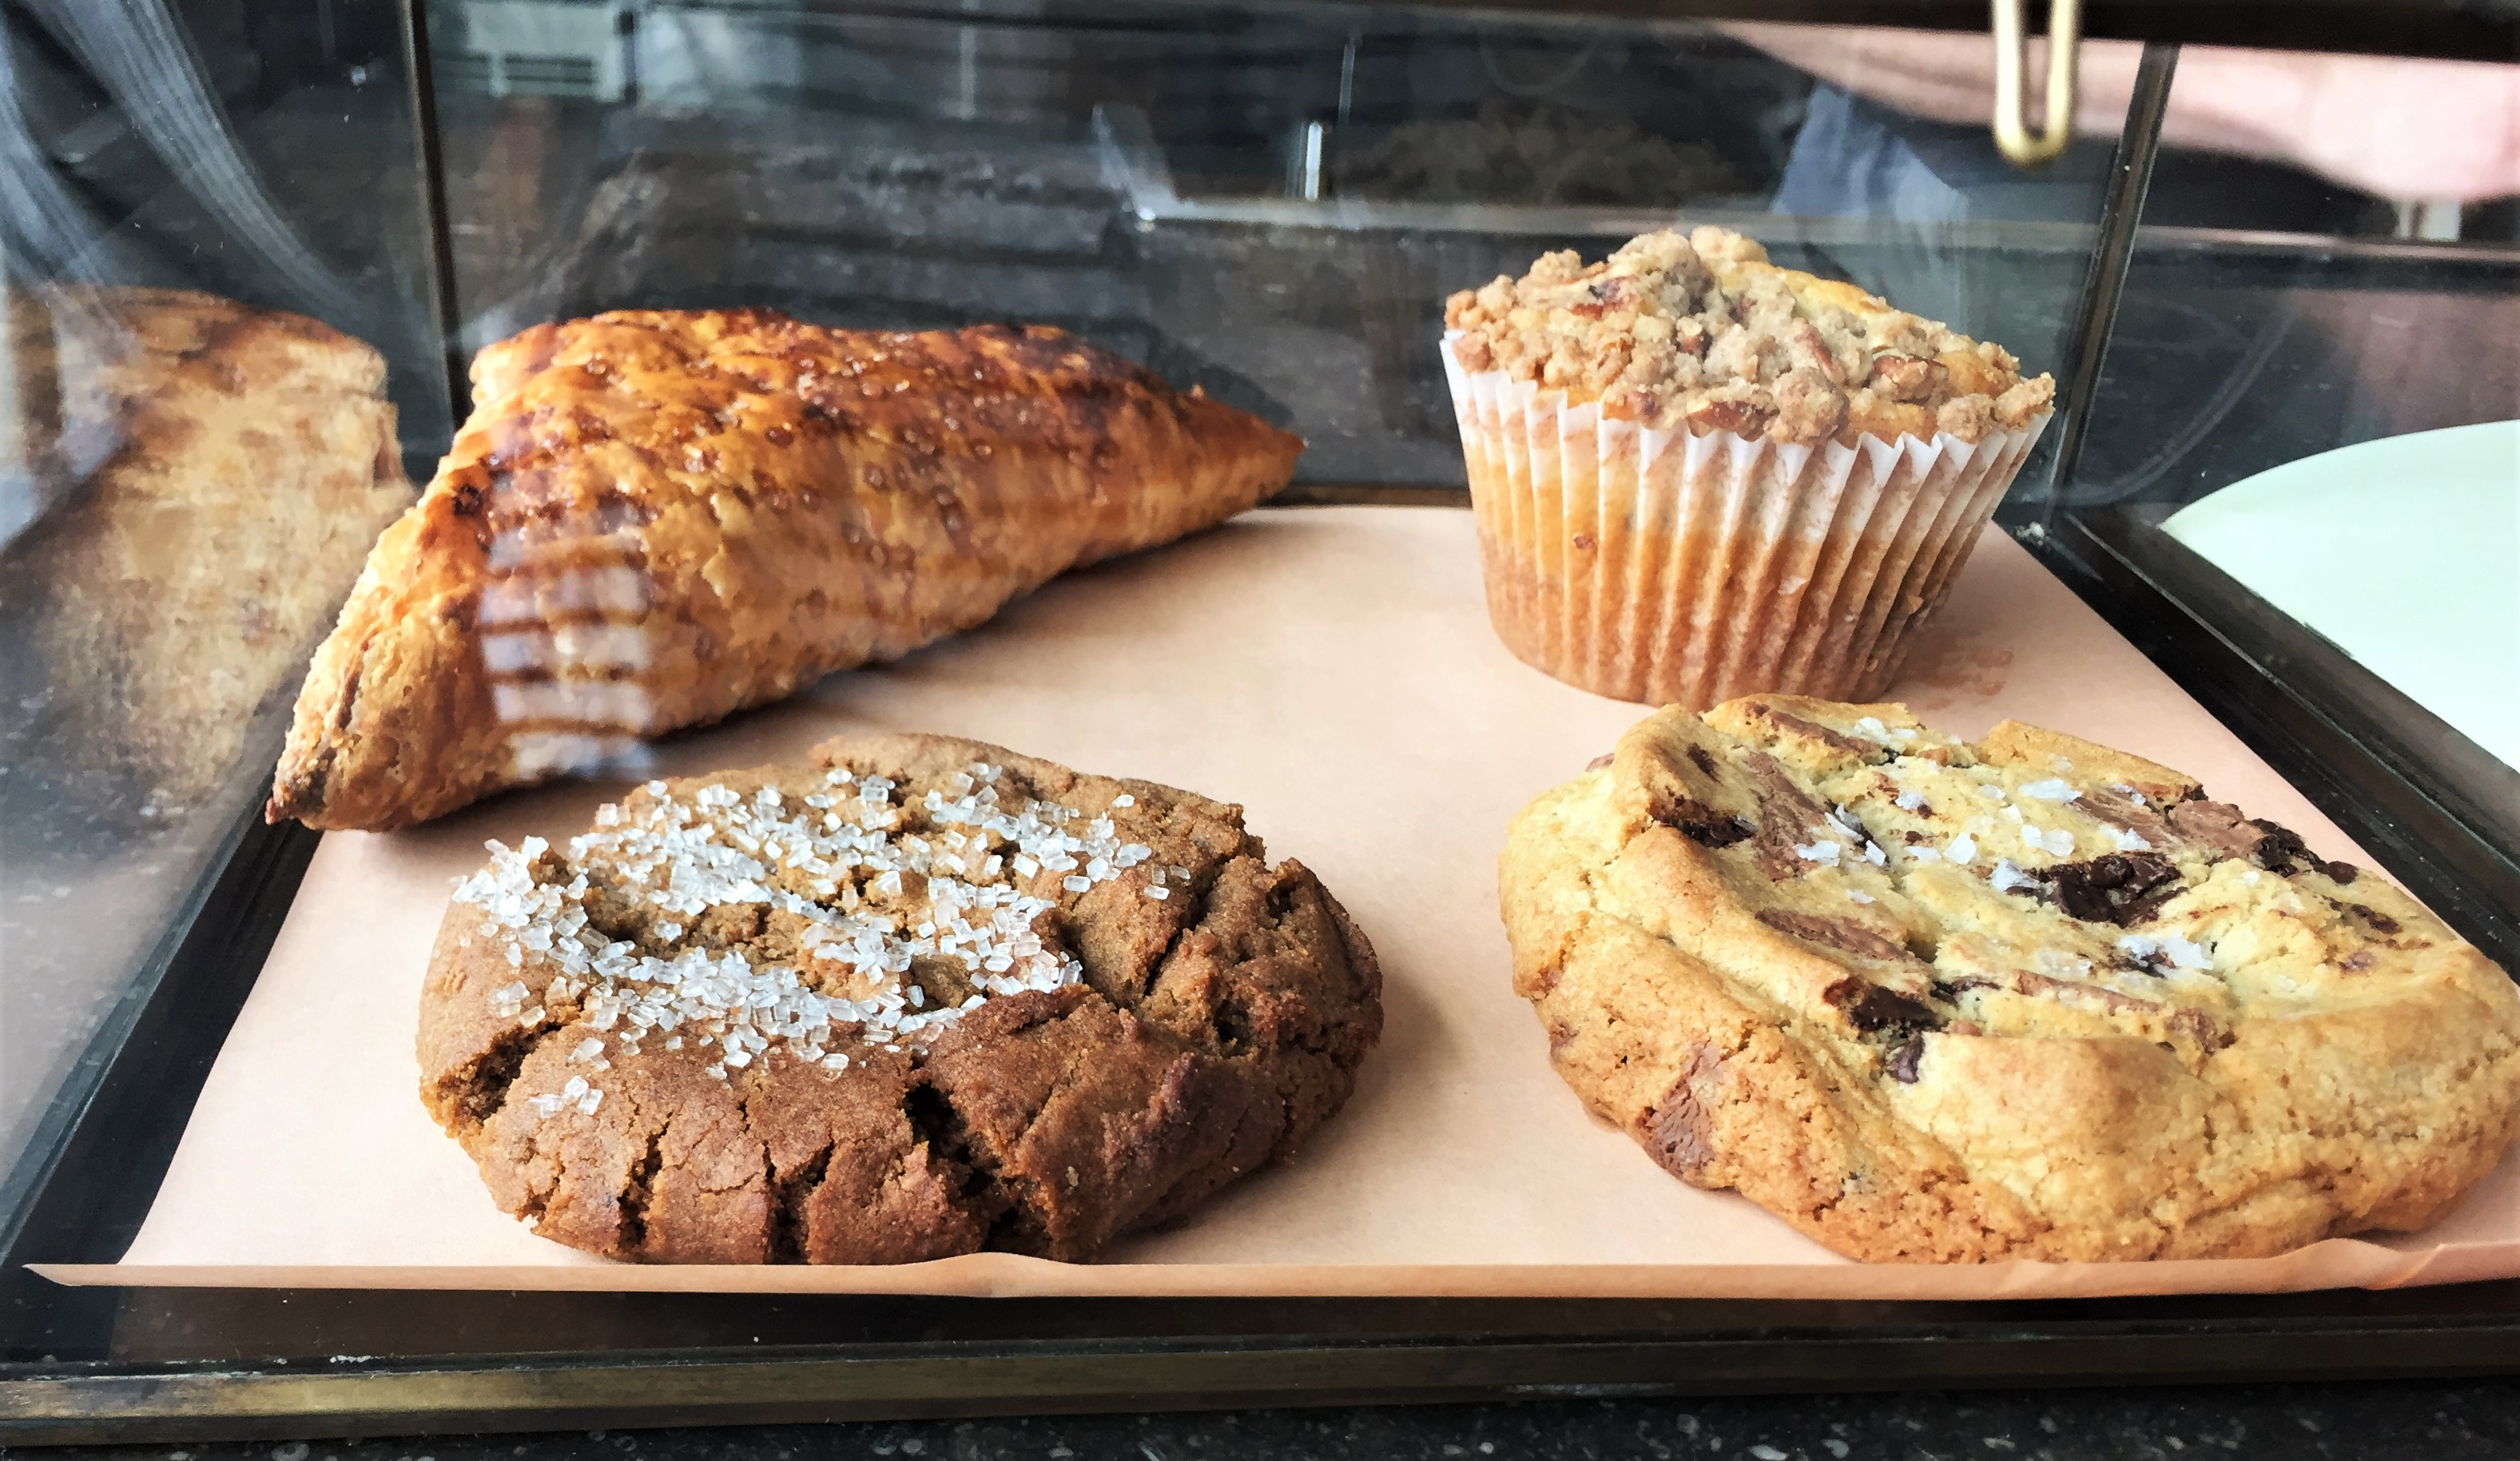 Vicia restaurant cookies and desserts